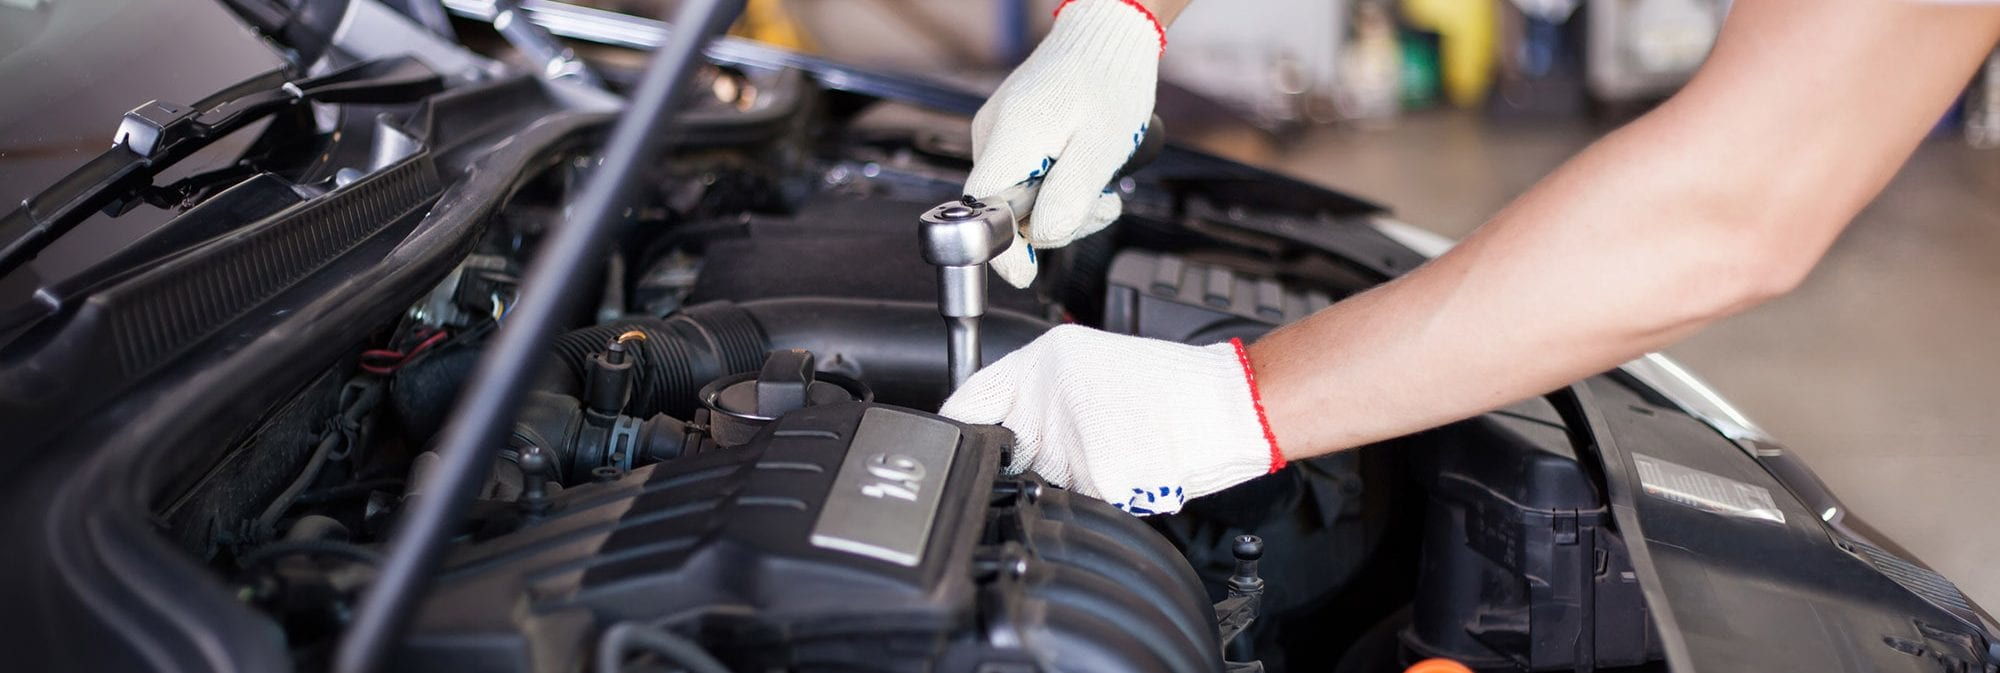 picture of someone fixing a car under the hood